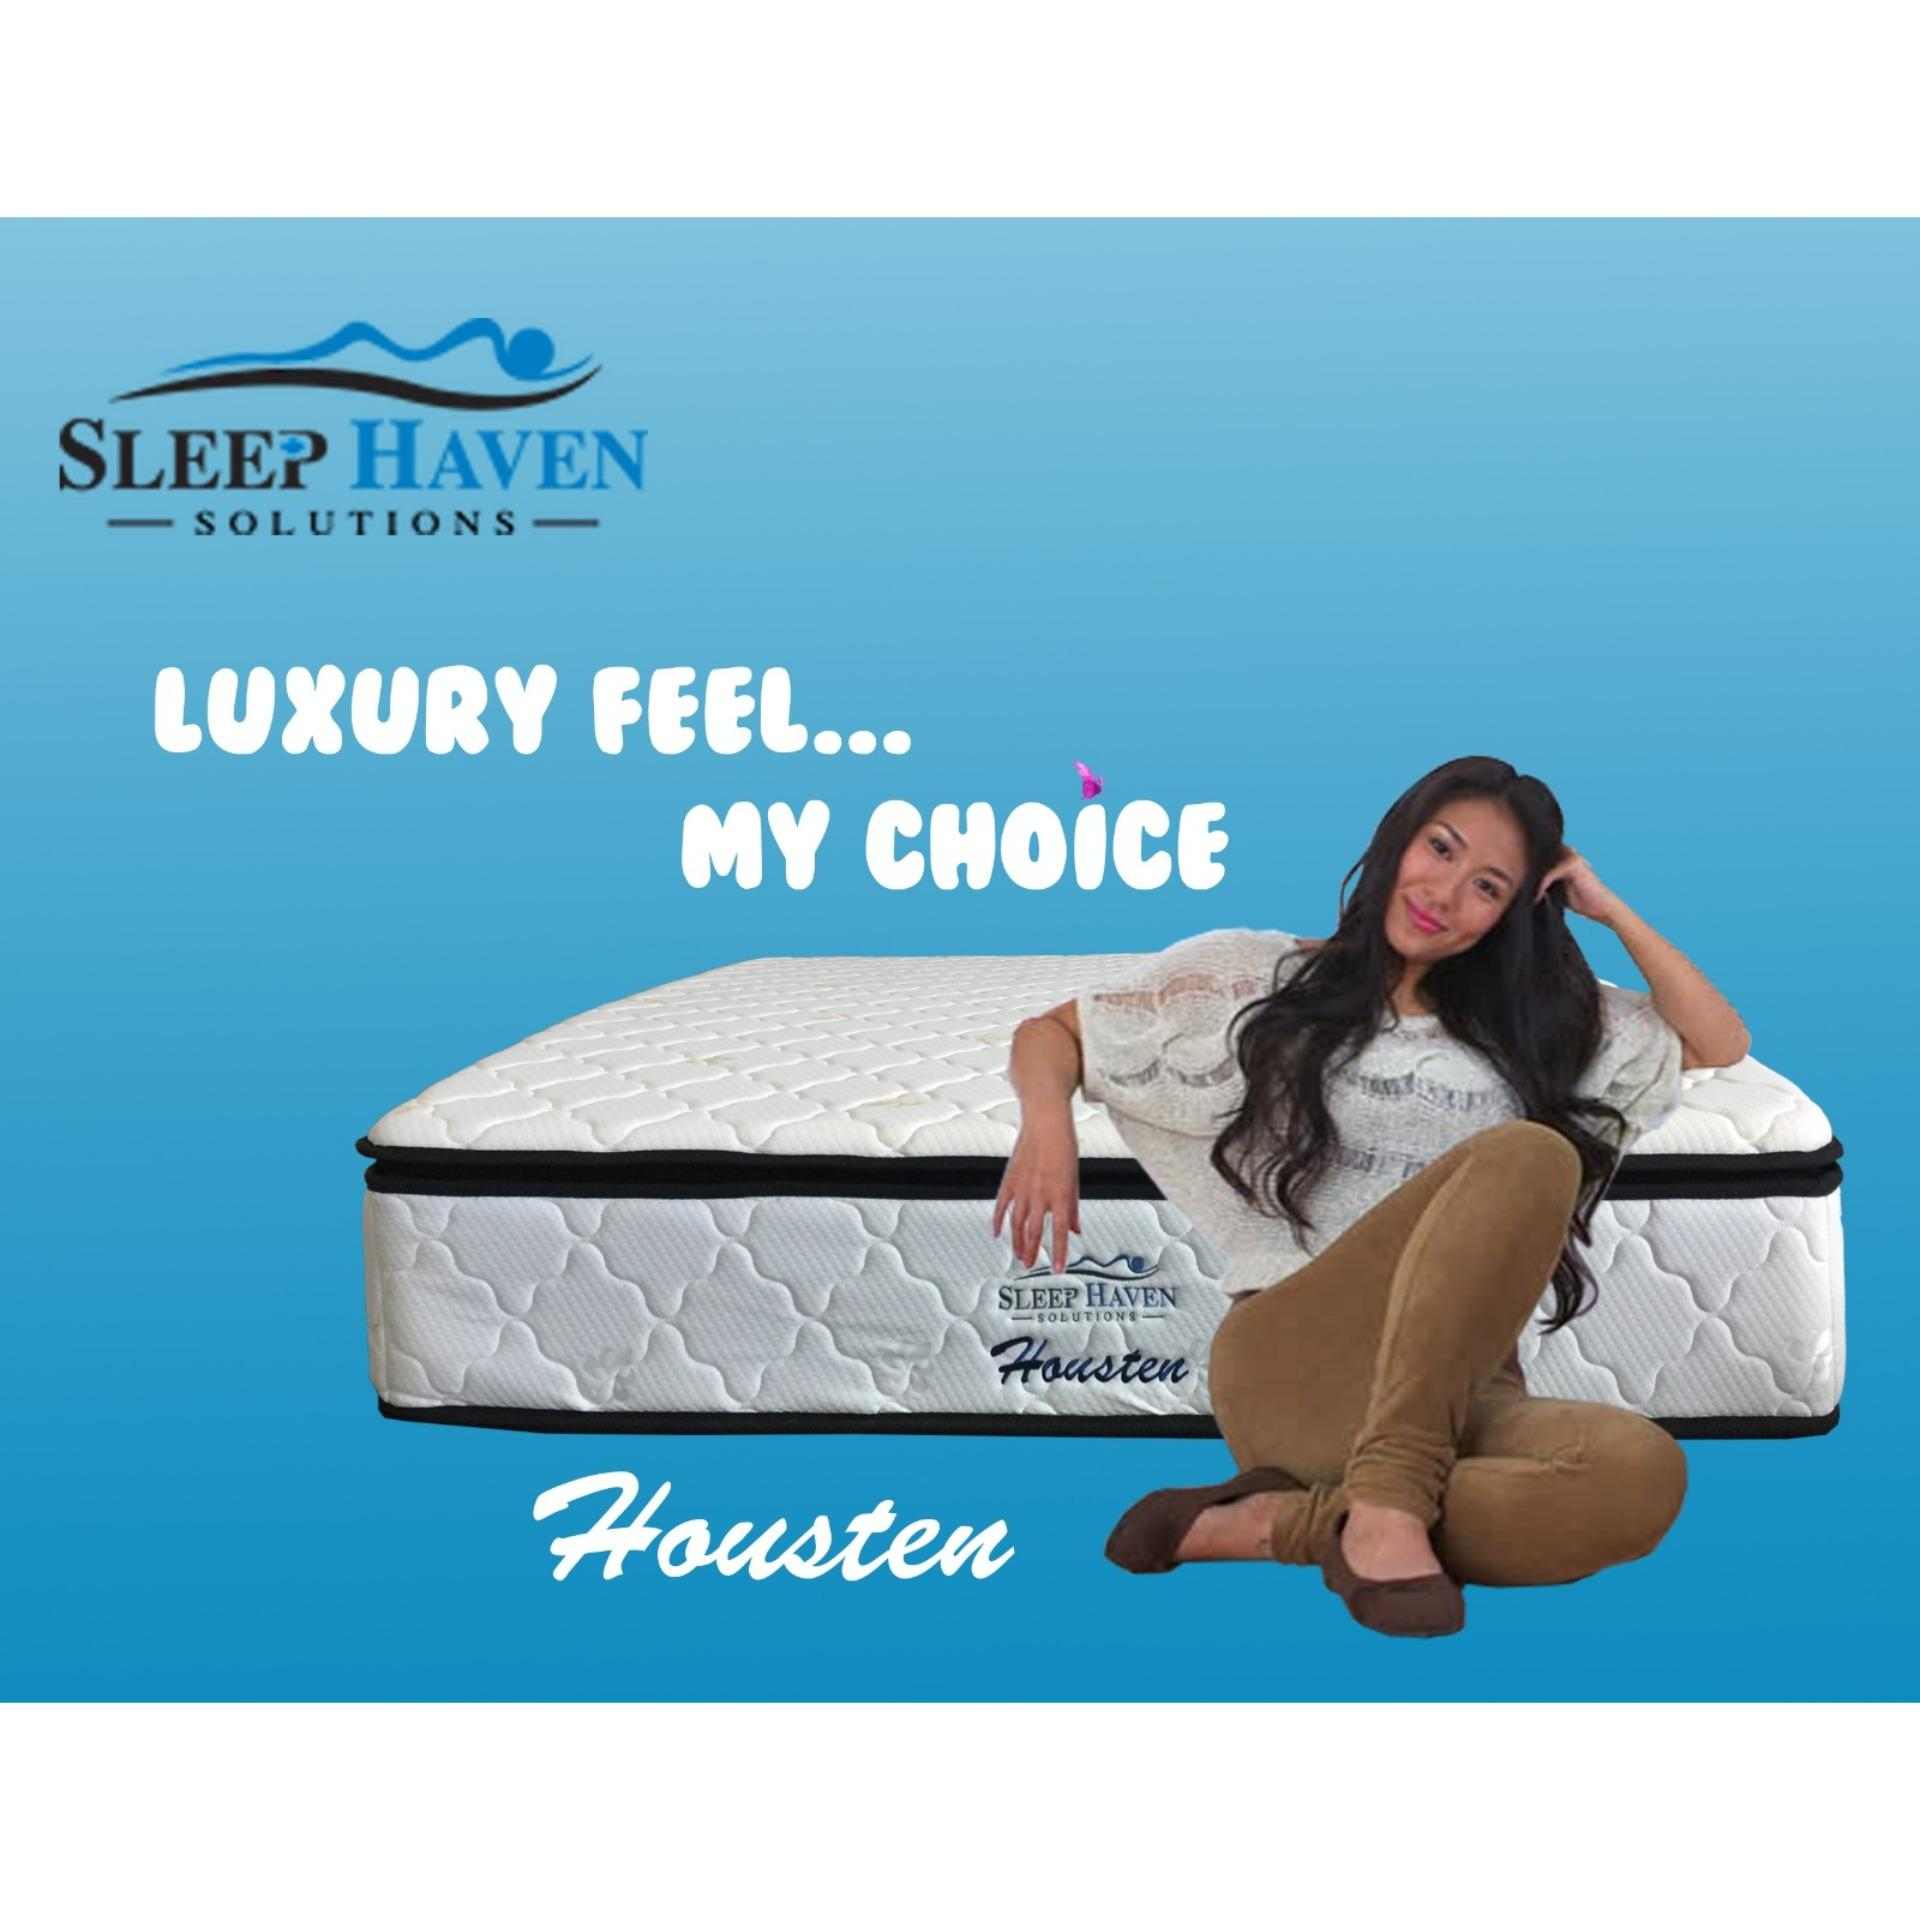 Sleep Haven Huasten 11 Pillow Top Bonnell Spring Mattress  Free Delivery